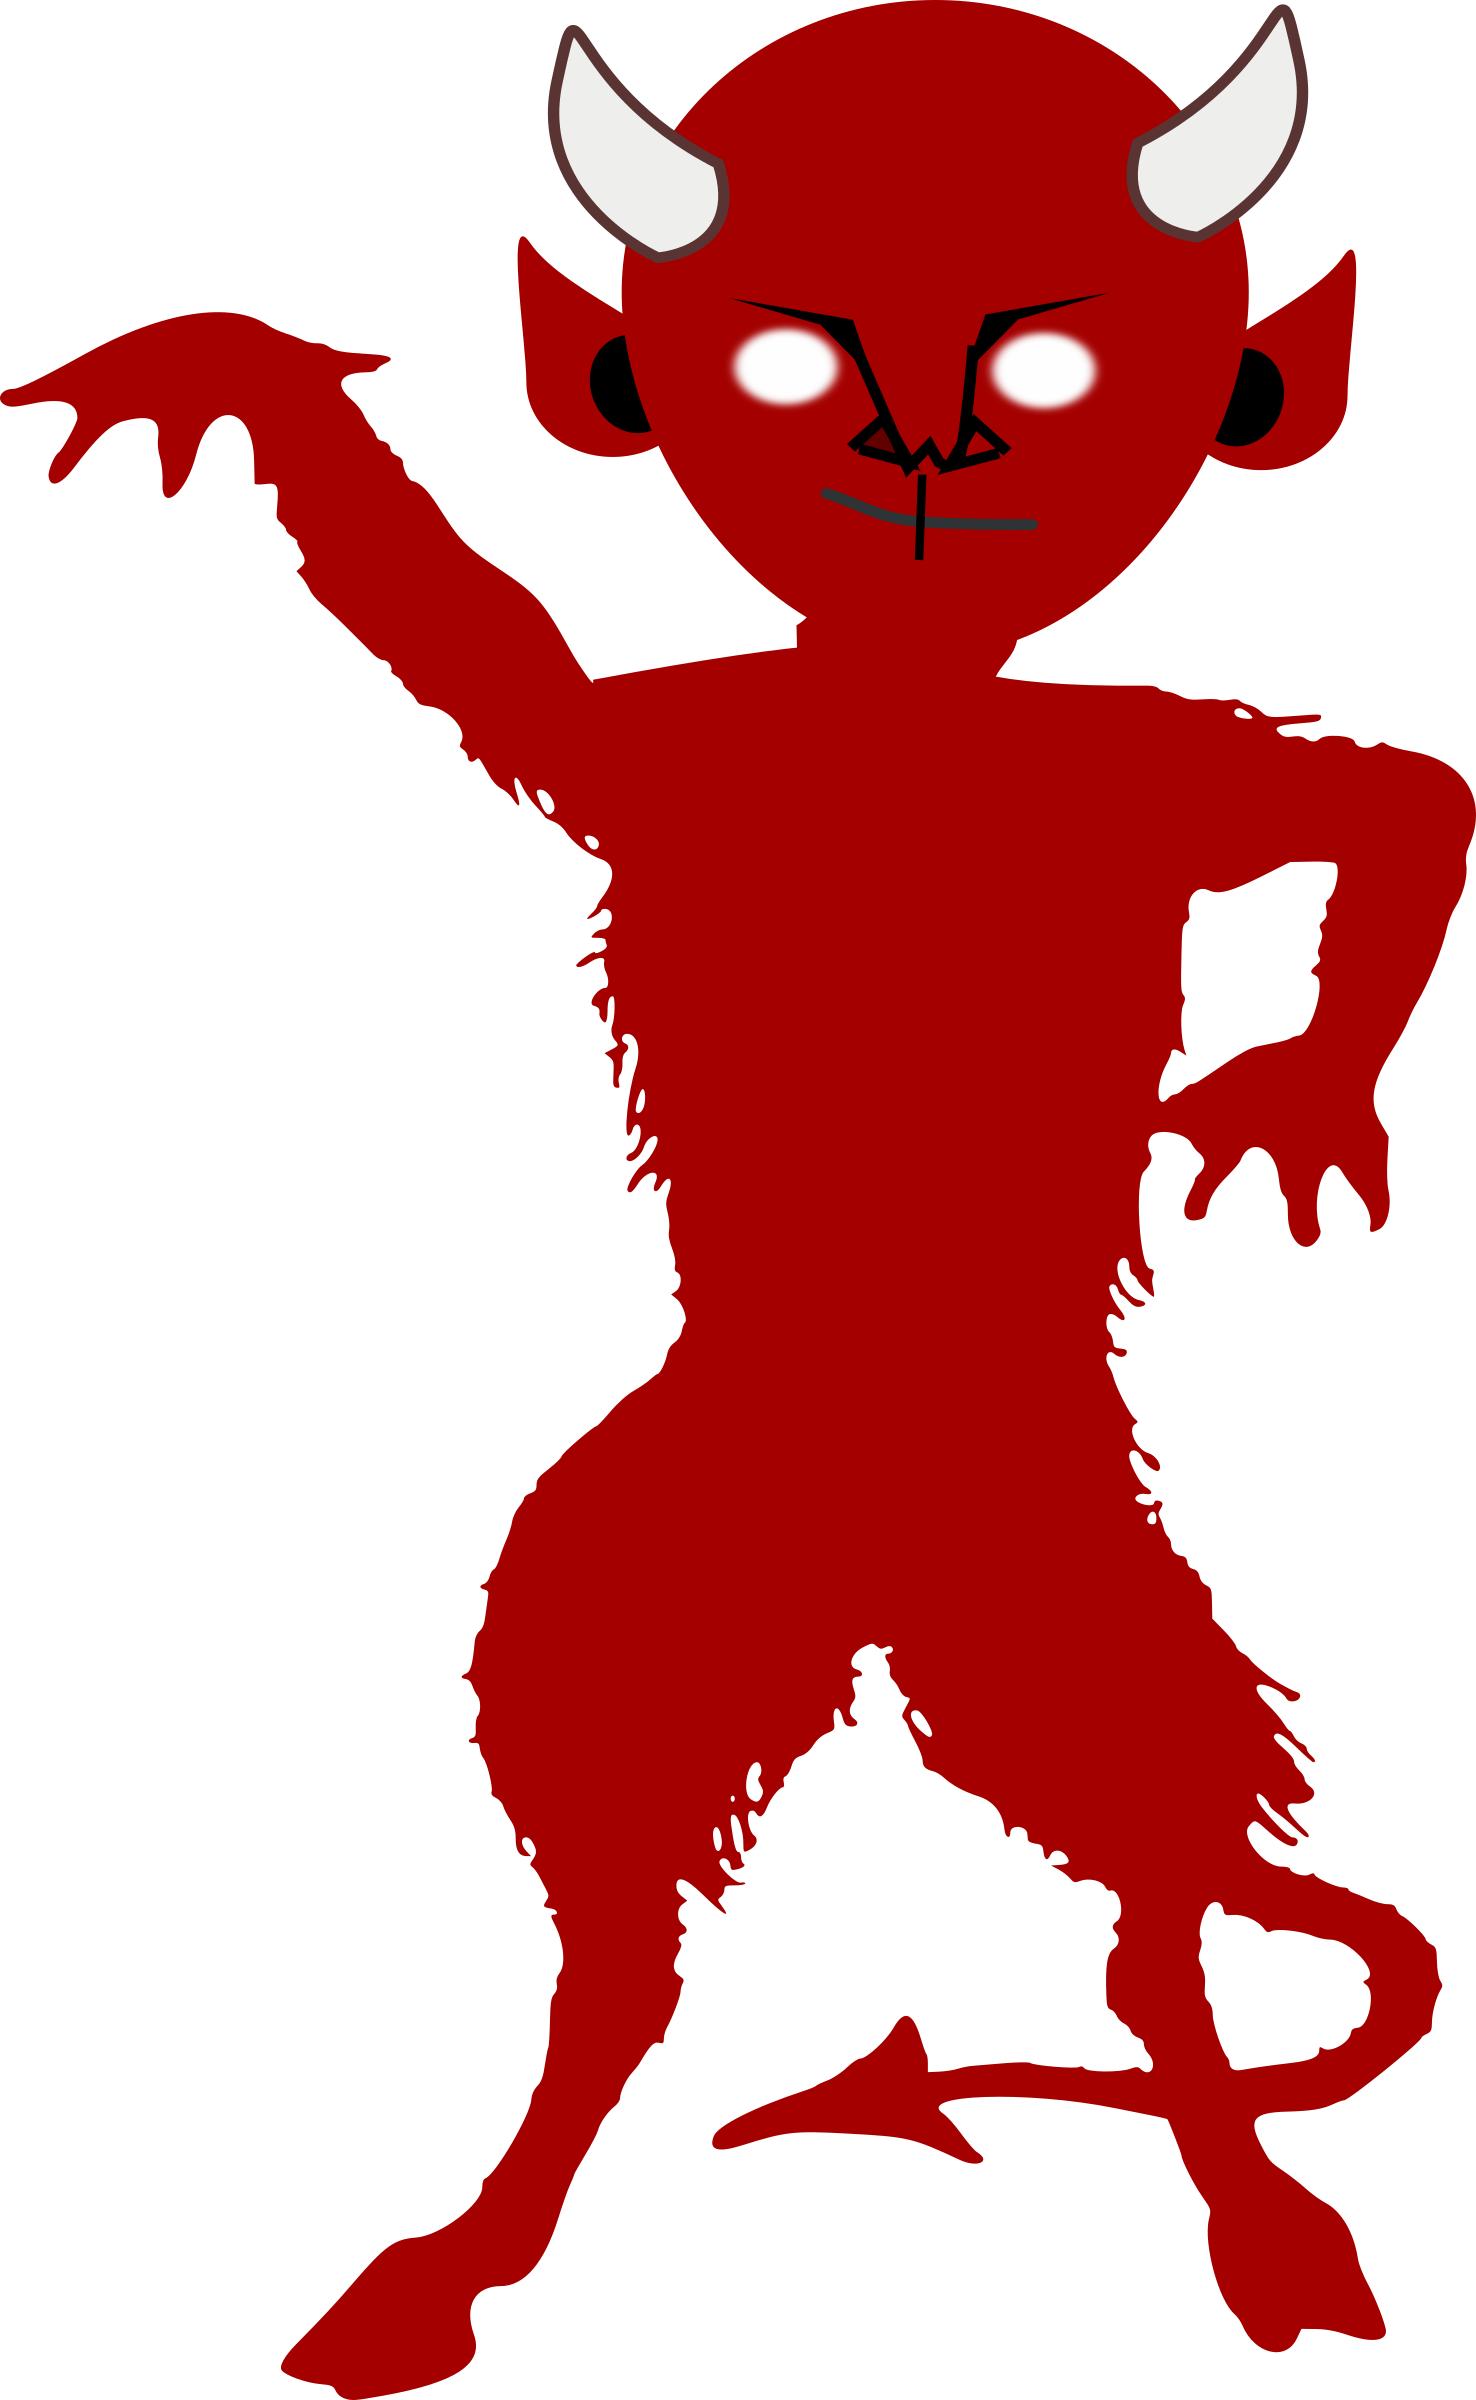 Halloween clipart devil picture royalty free library Demon Silhouette at GetDrawings.com | Free for personal use Demon ... picture royalty free library